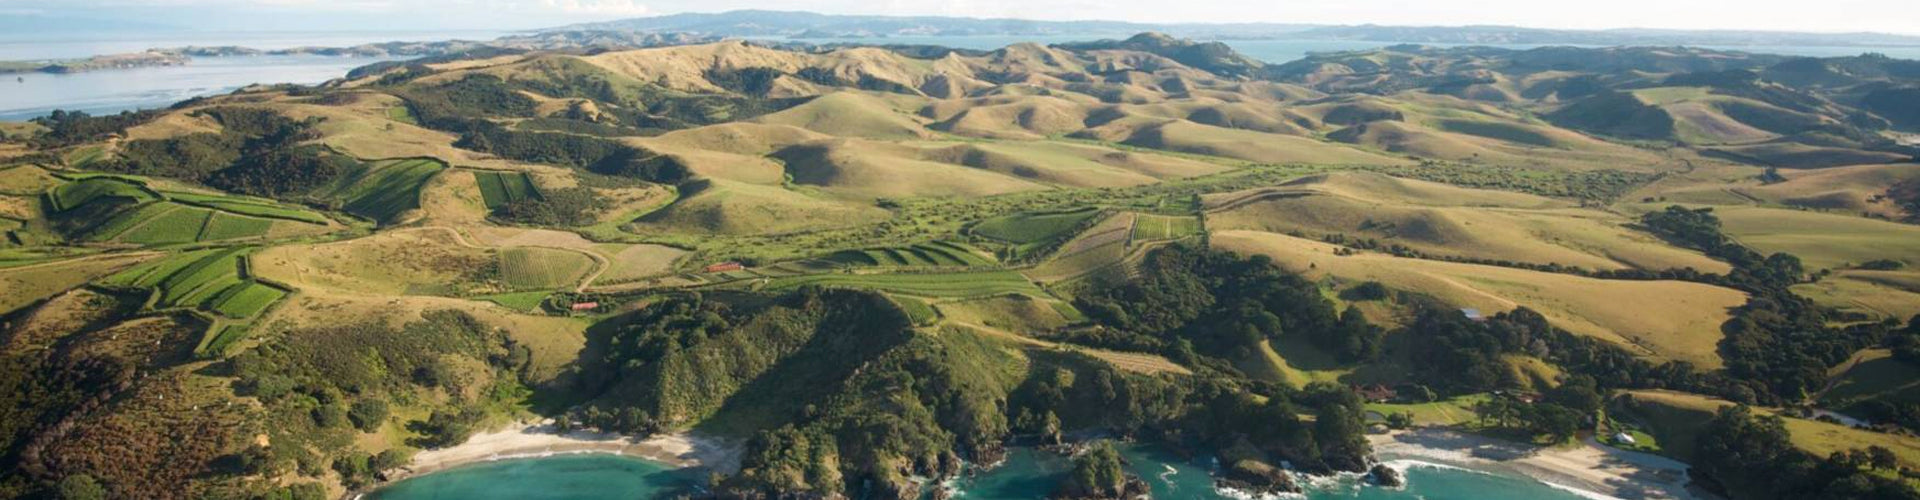 Man O' War Vineyards Waiheke Island New Zealand